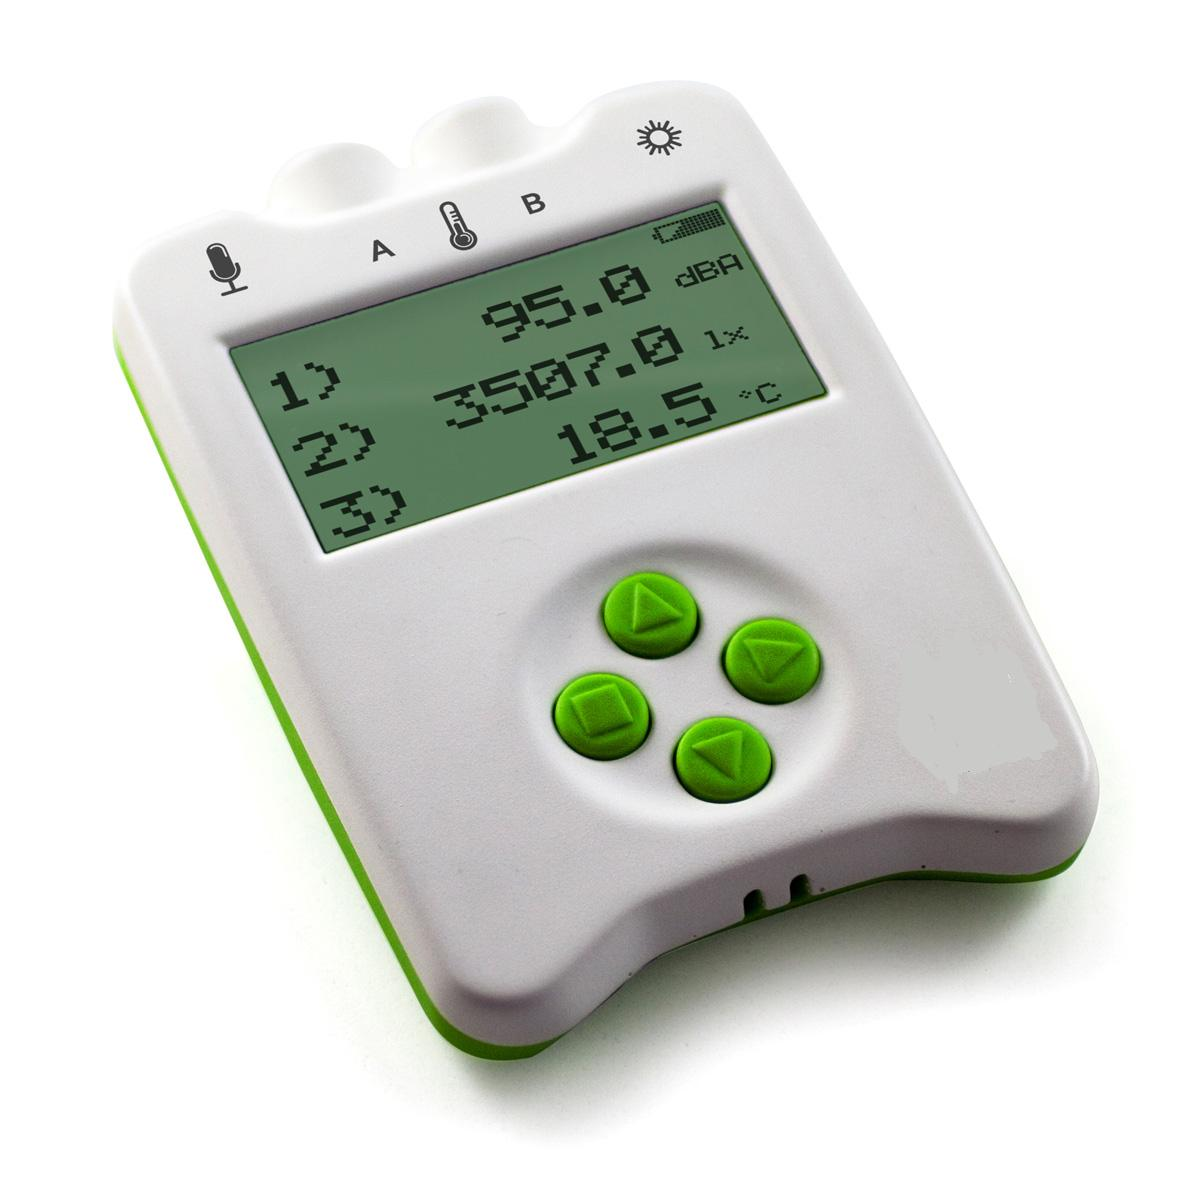 Global Temperature and Humidity Data Loggers Market Research Report 2019 Opportunities, Size, Cost Structure, Service Provider, Segmentation, Shares, Forecast to 2023